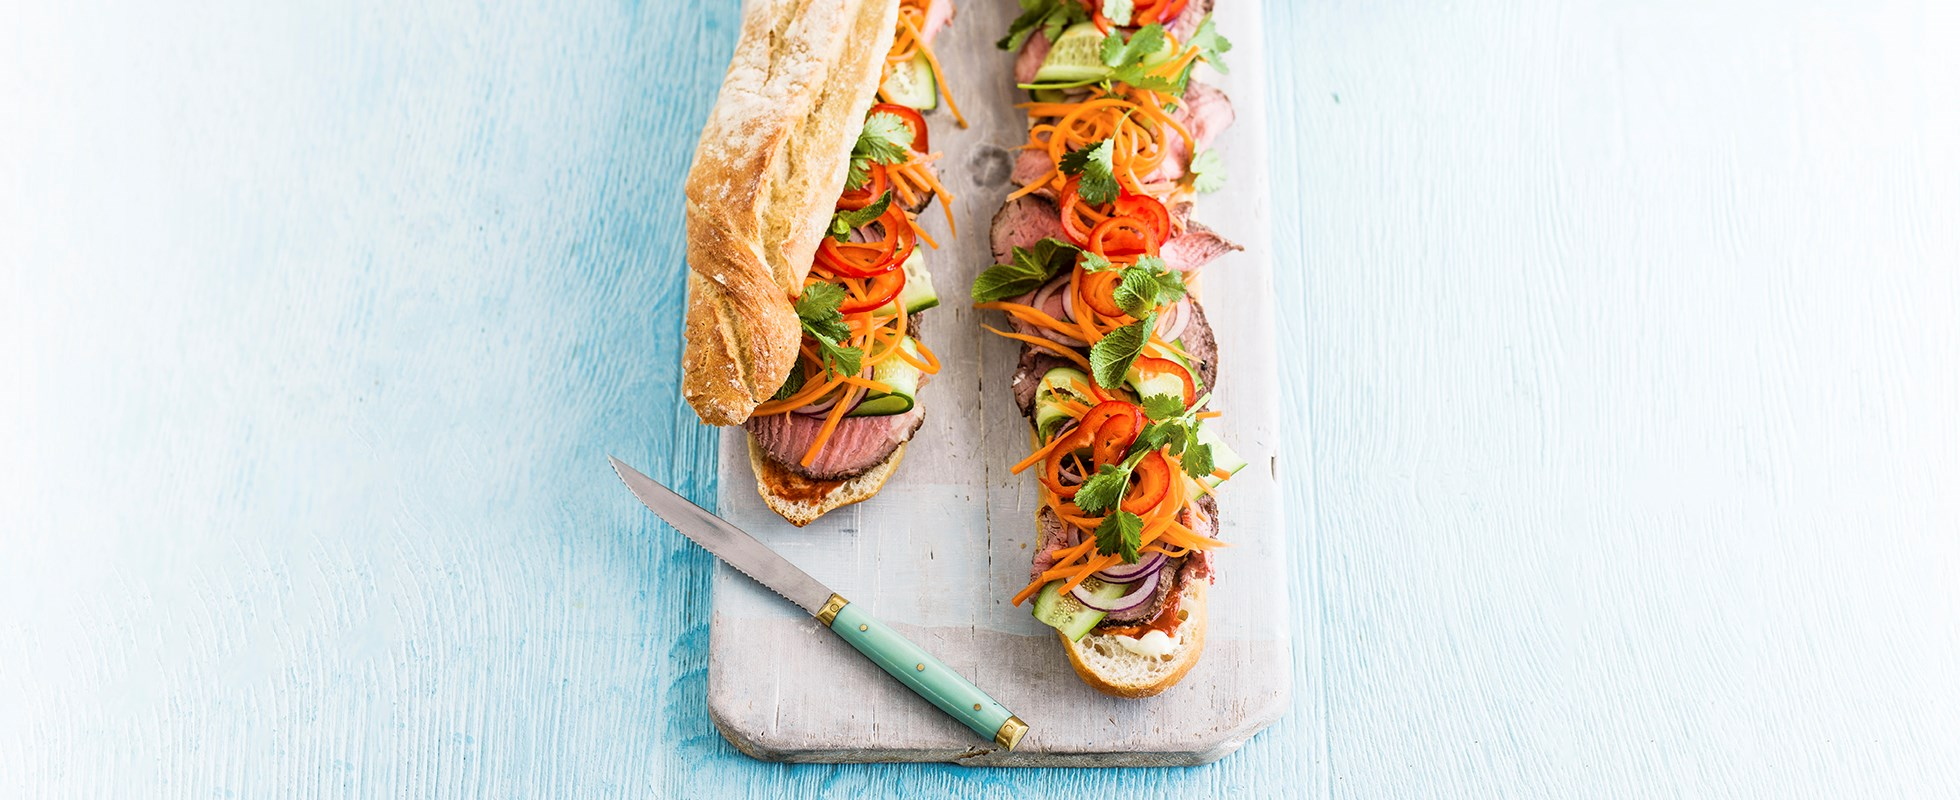 Best ever asian street food recipes olive magazine olive magazine this version is packed with delicious flavours and looks fantastic with so many colourful ingredients take a look at our video recipe for banh mi forumfinder Choice Image